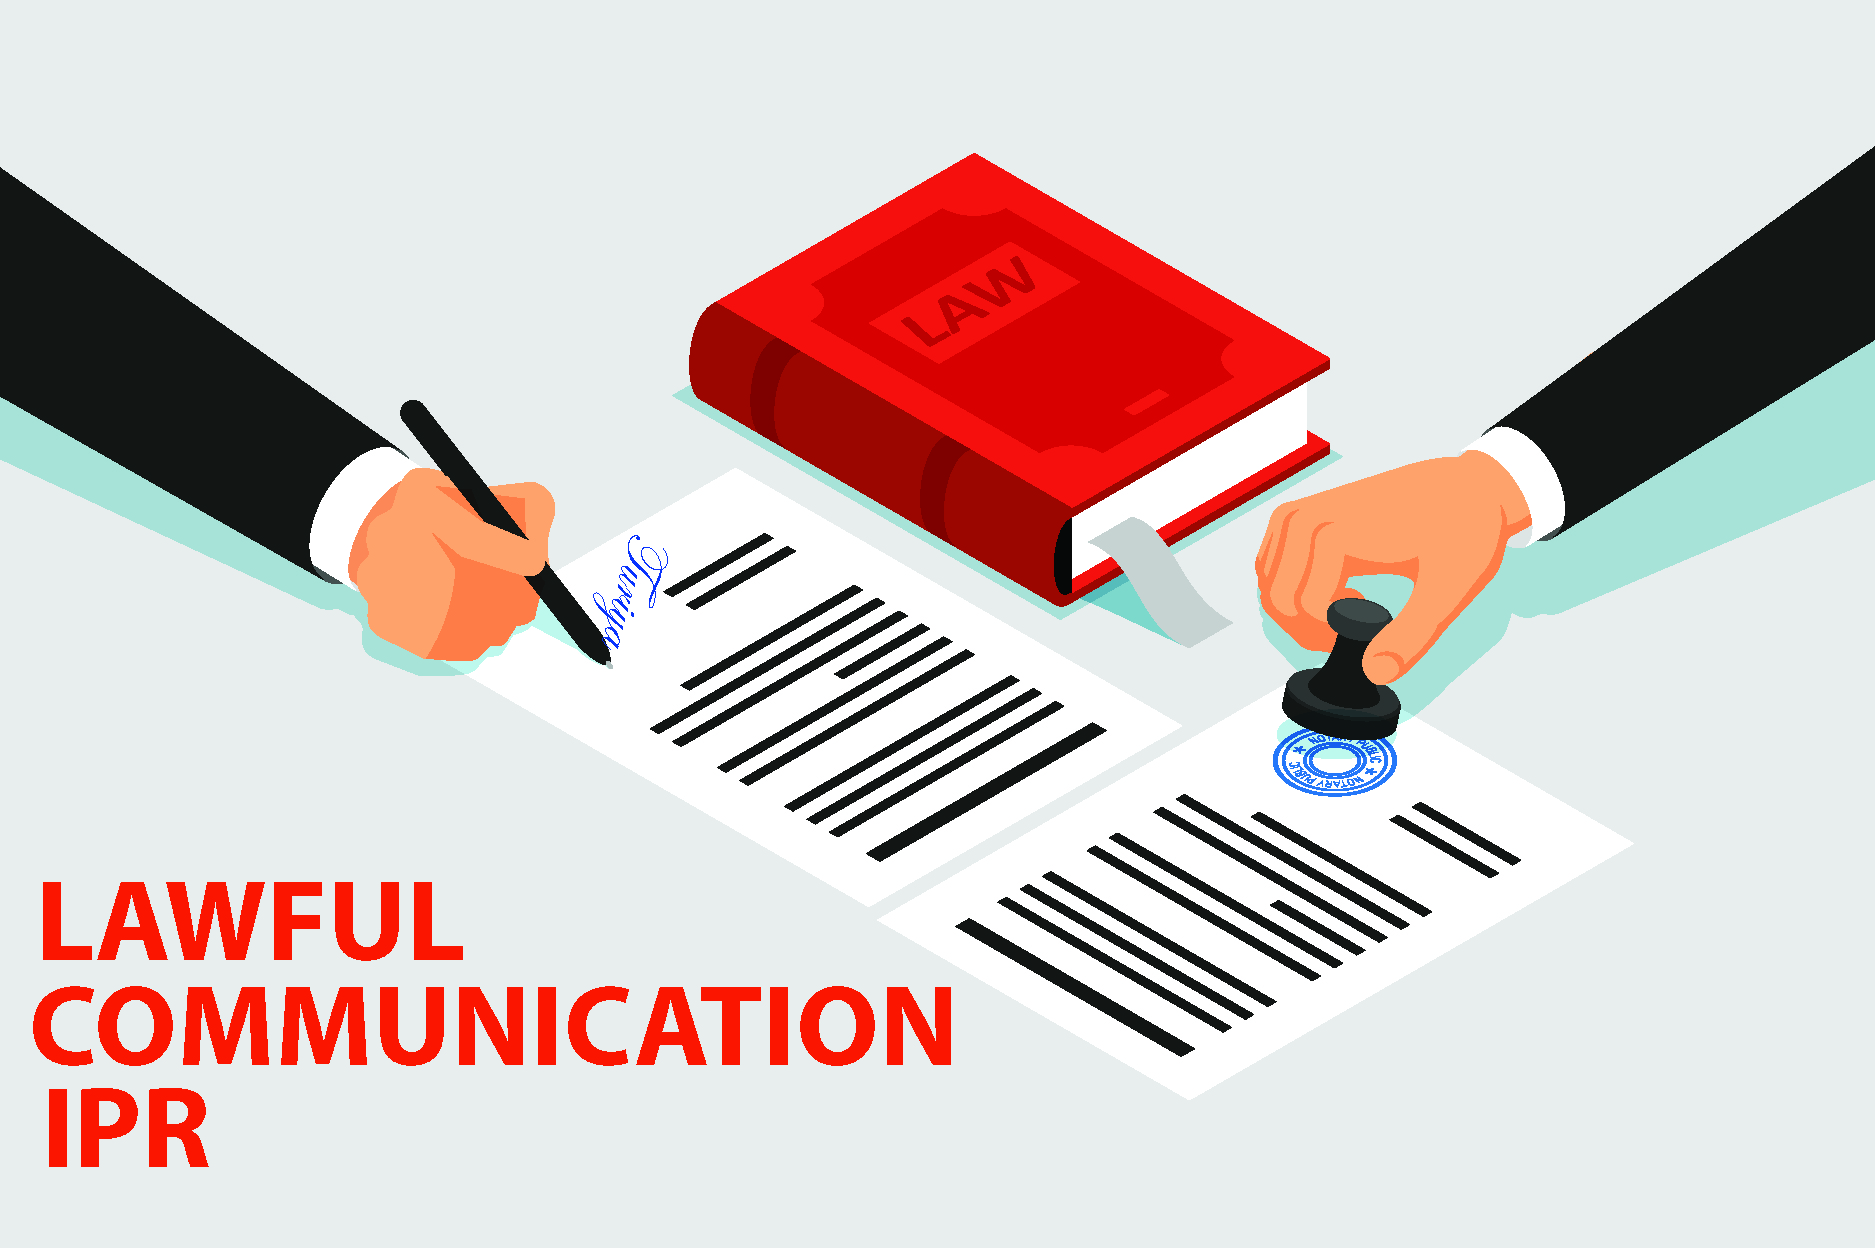 Lawful Communication